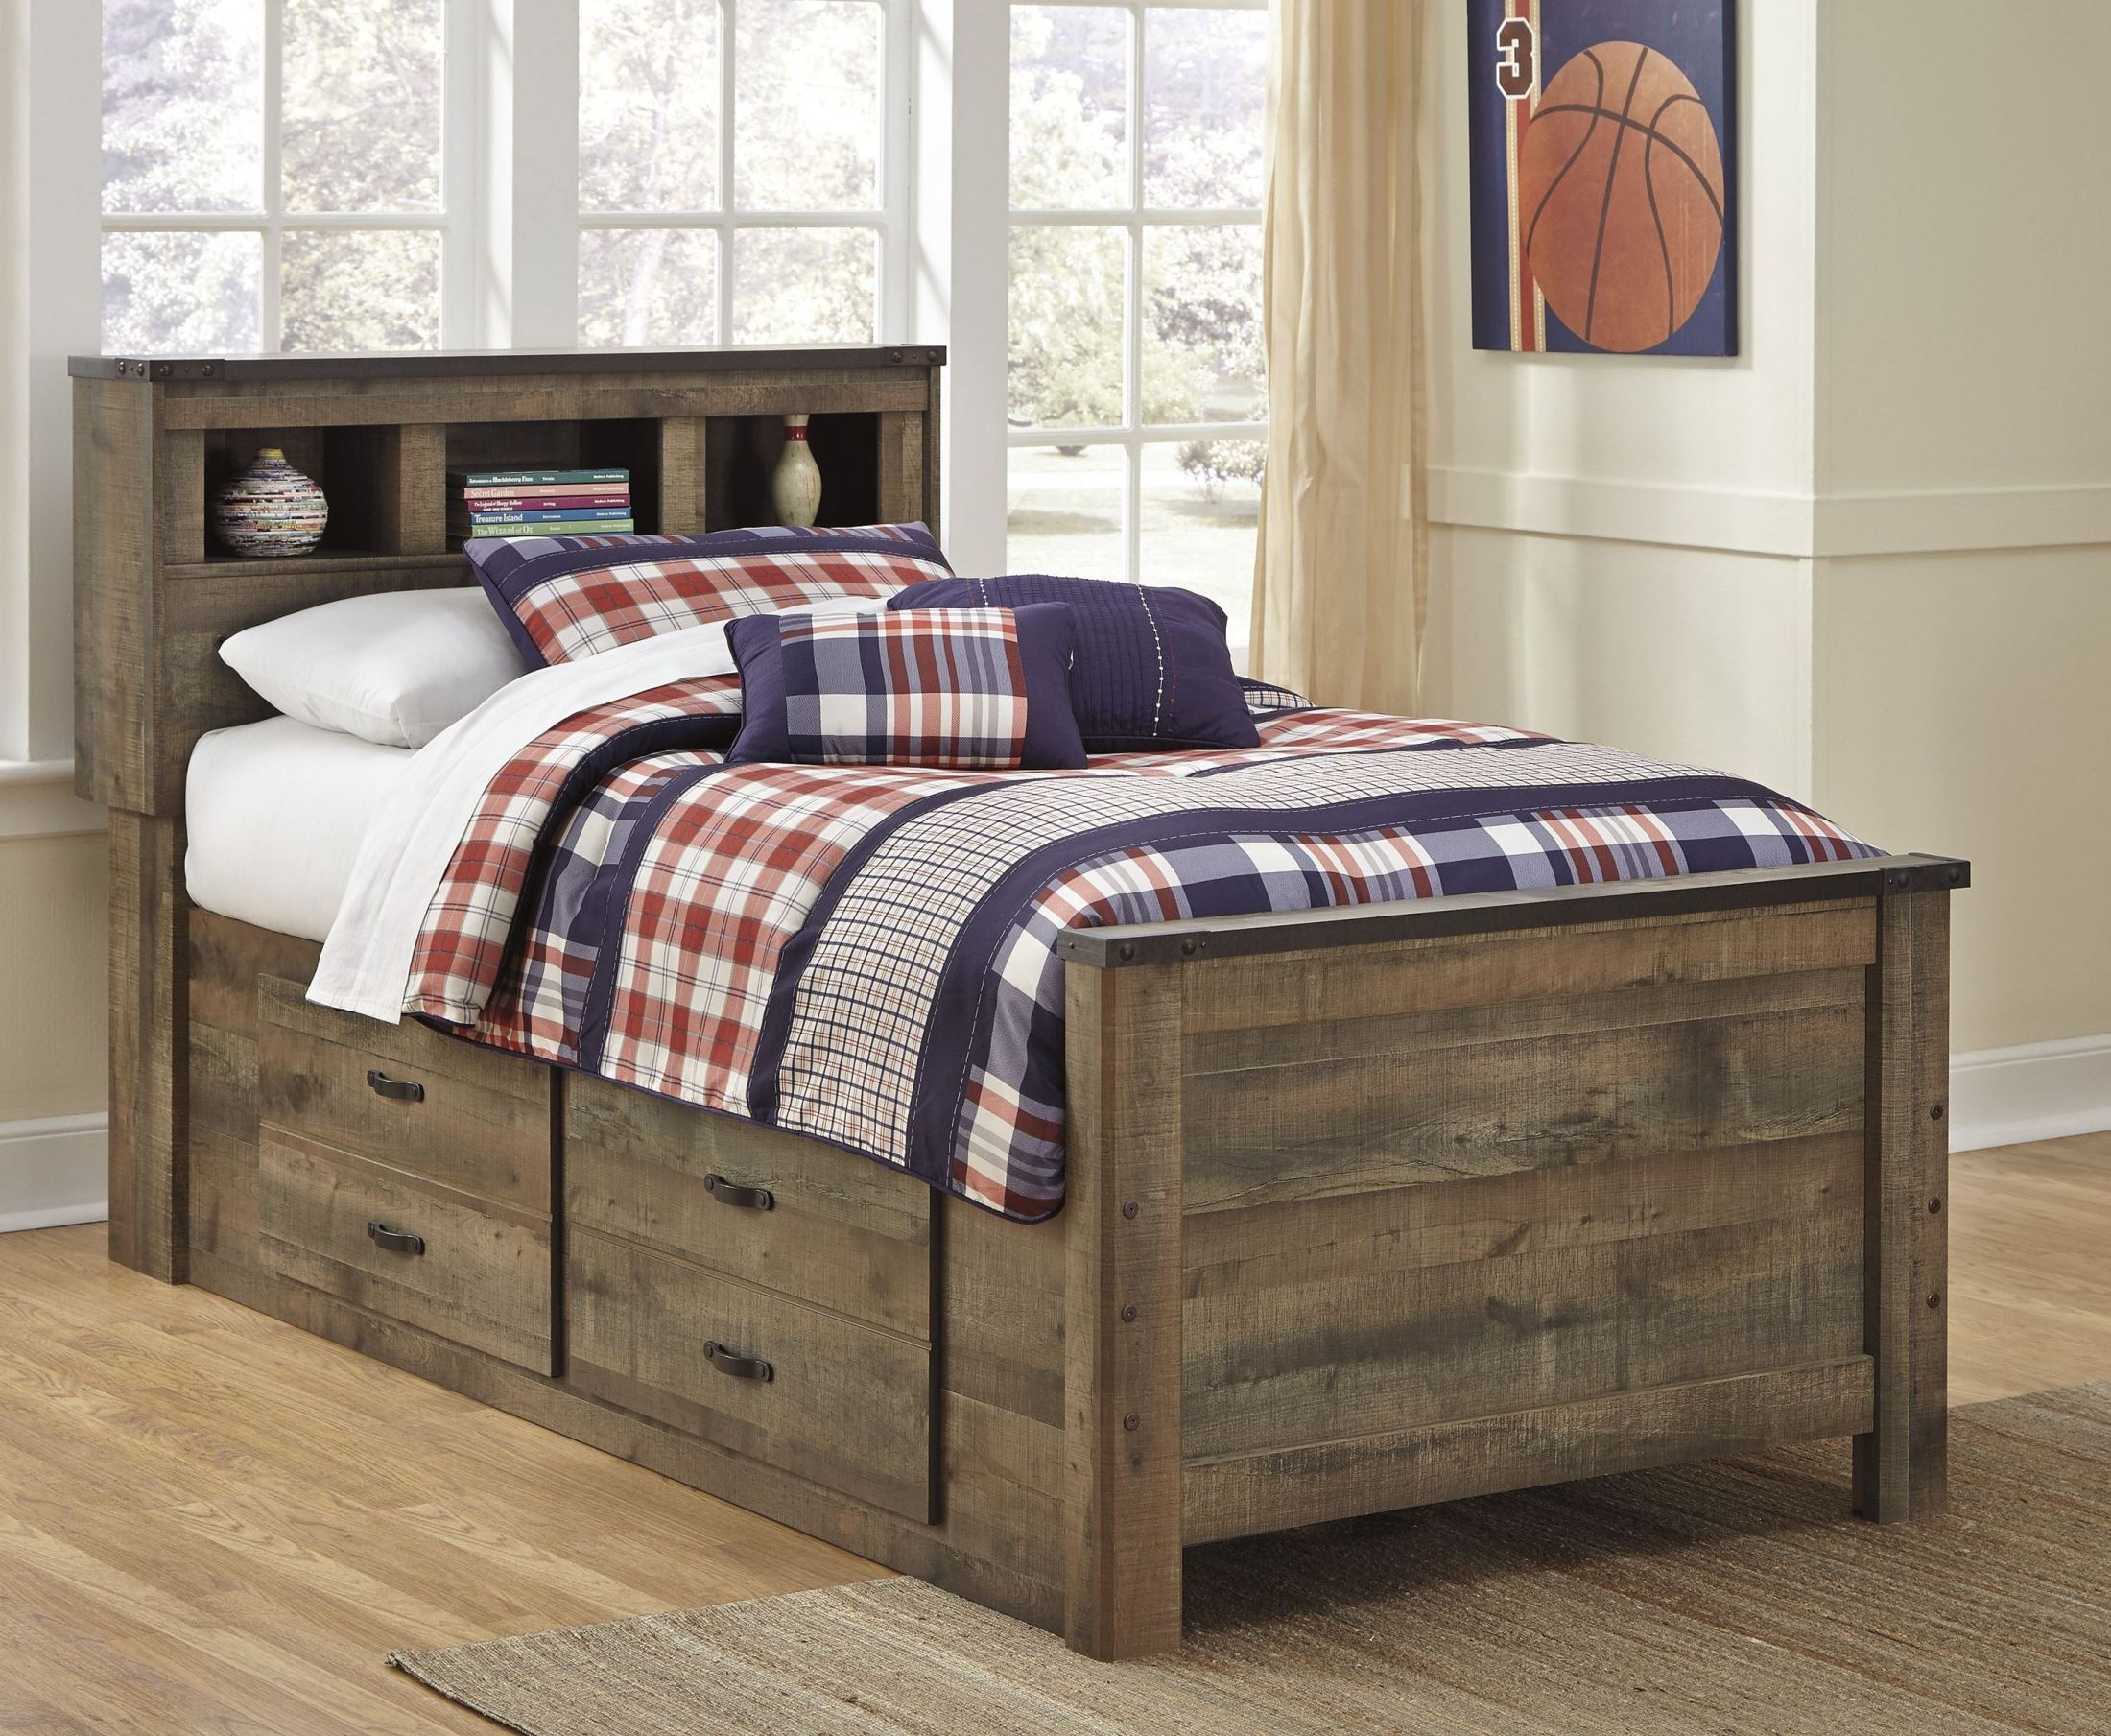 product beds storage bedroom item yorkdale queen furniture bed the platform package light bookcases bookcase piece brick